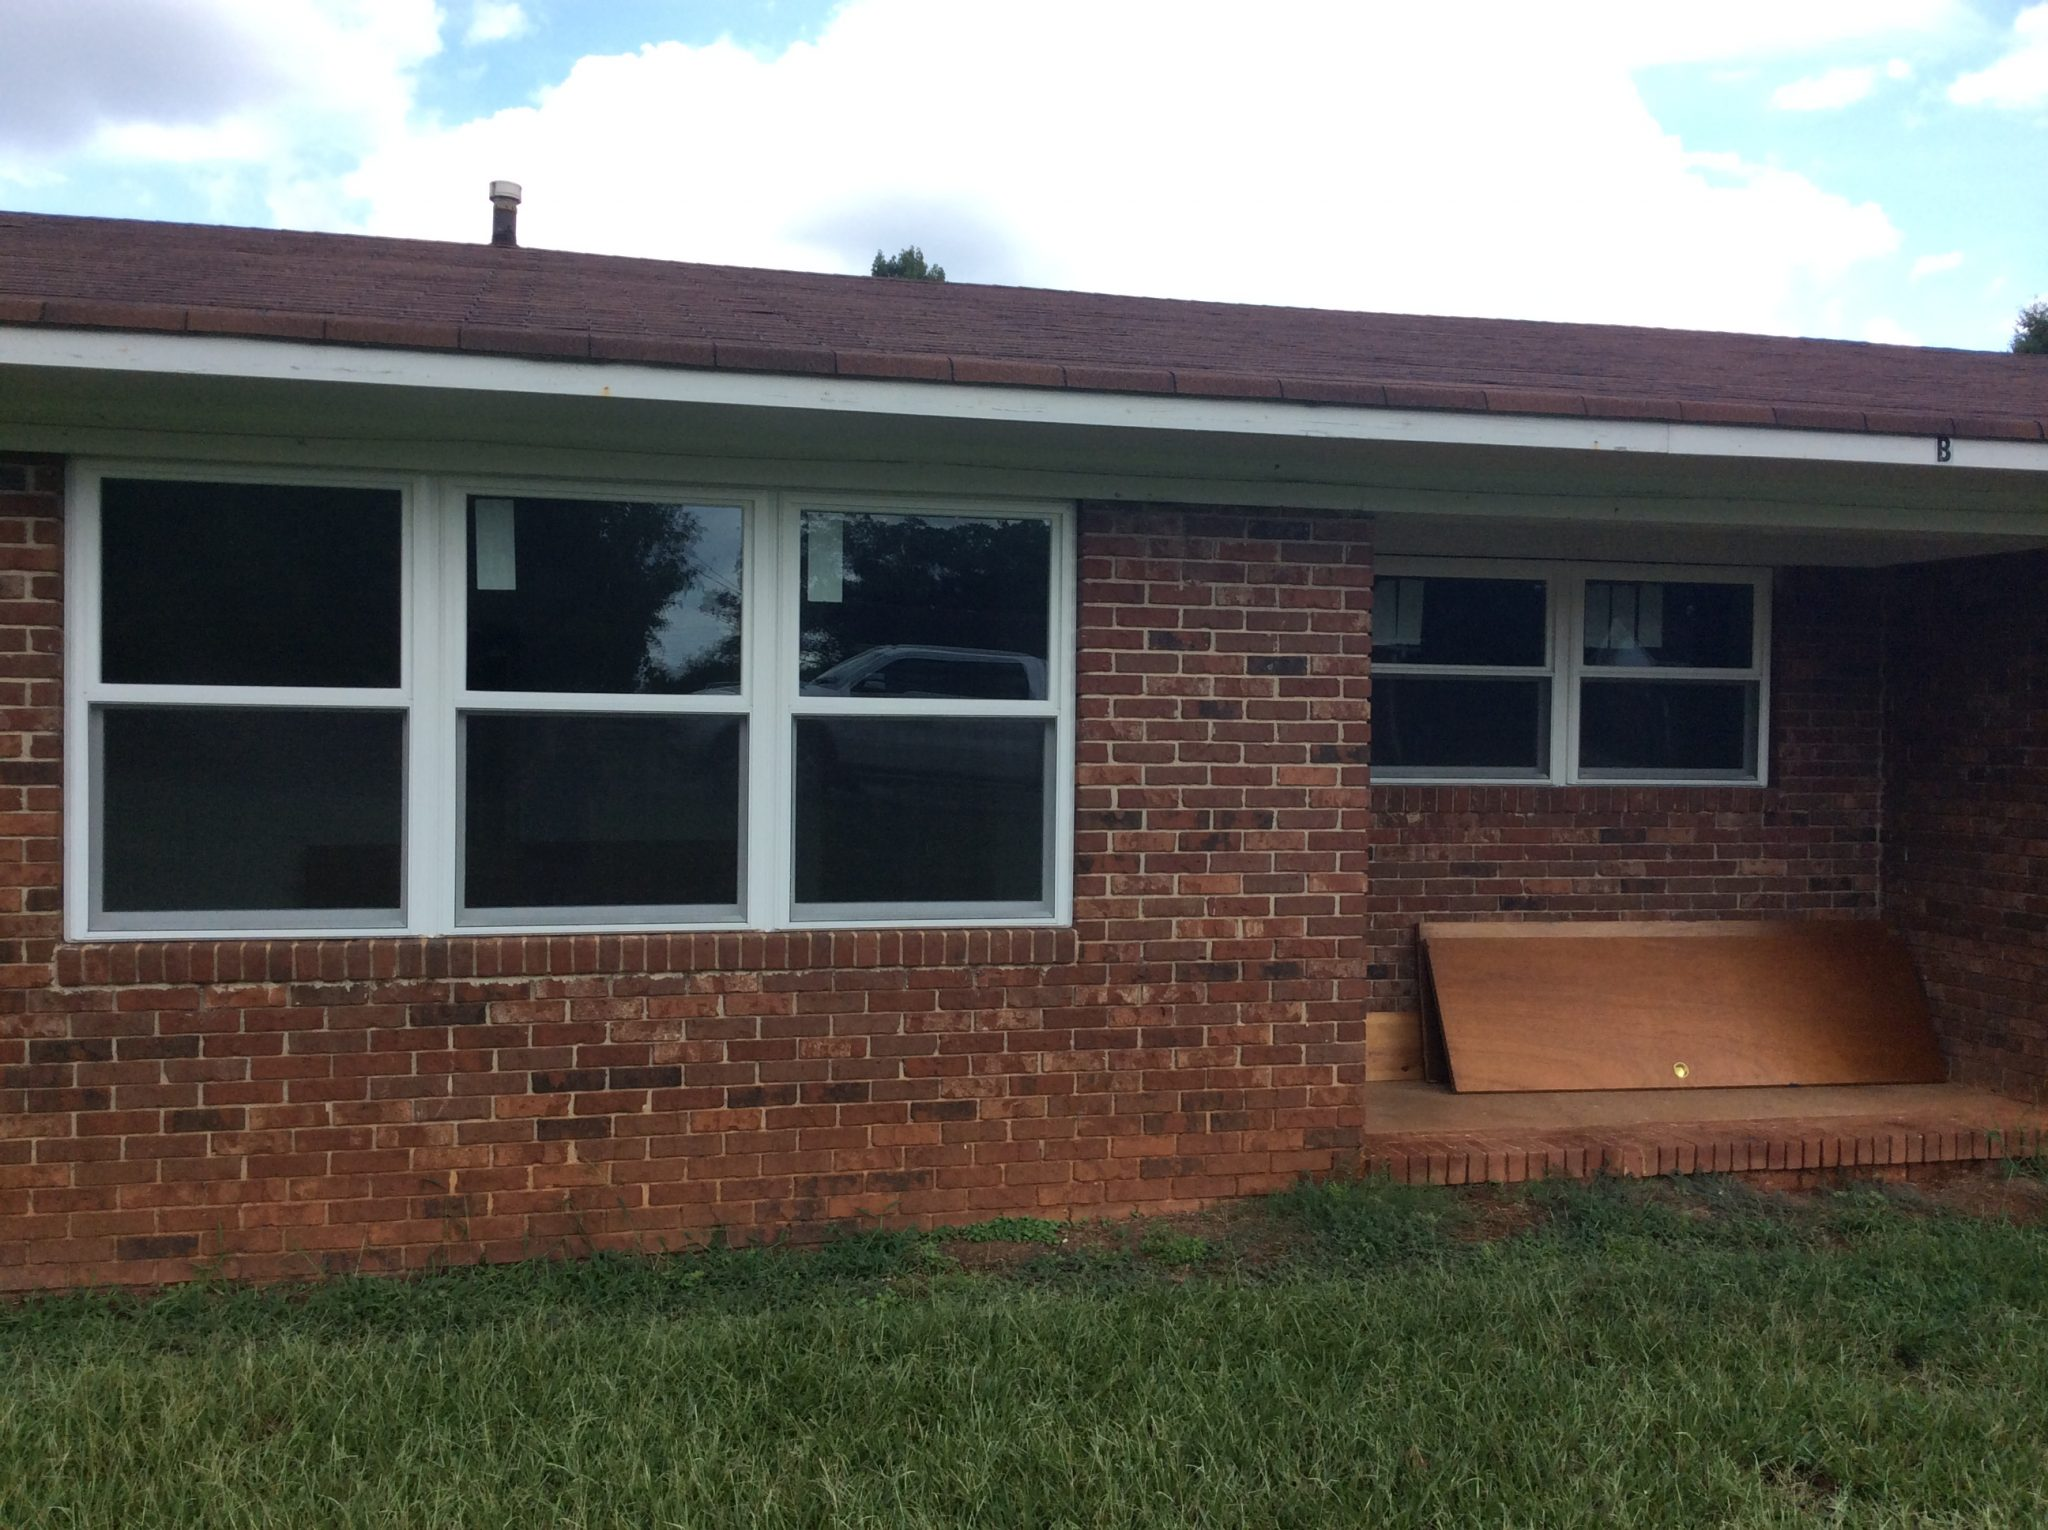 The Window Source Of Athens Is Proud To Share A Recent Replacement Project We Completed In Winterville Ga This Featured